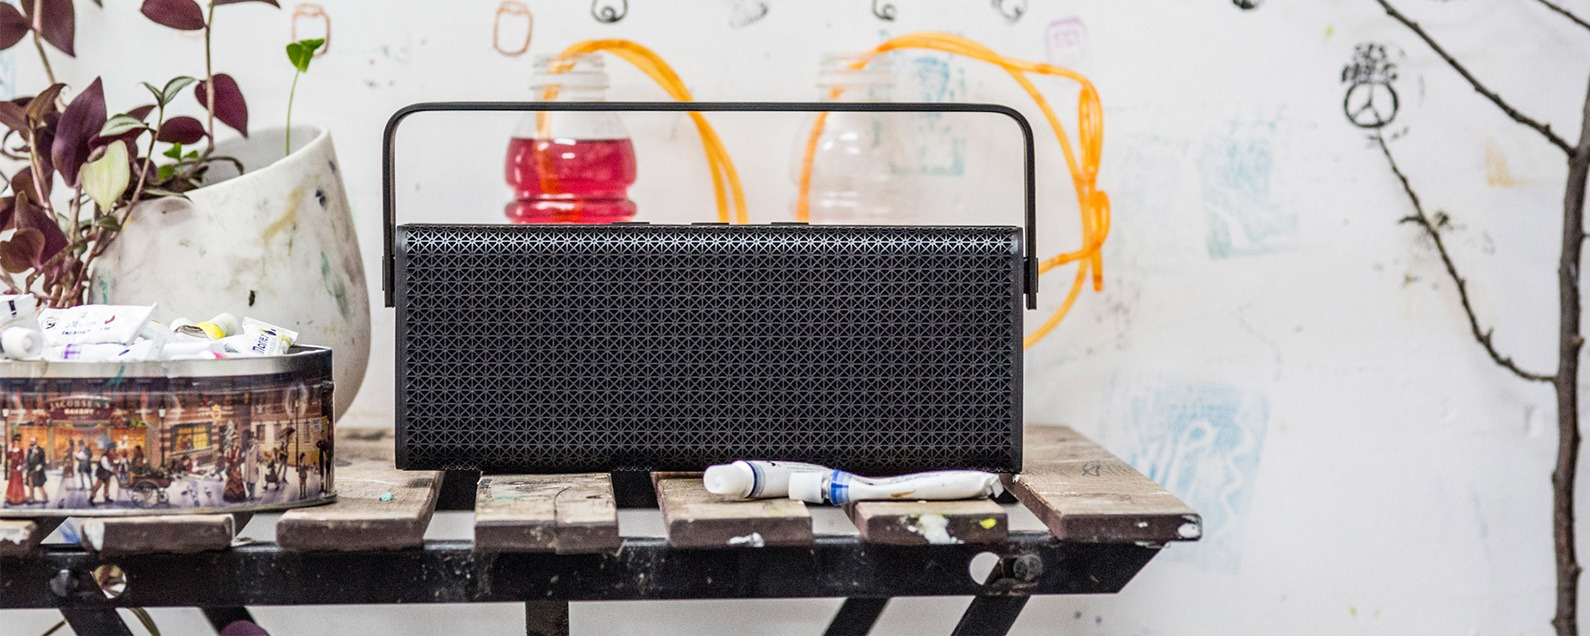 Review: Portable Wireless Bluetooth Speaker for Home or on the Go